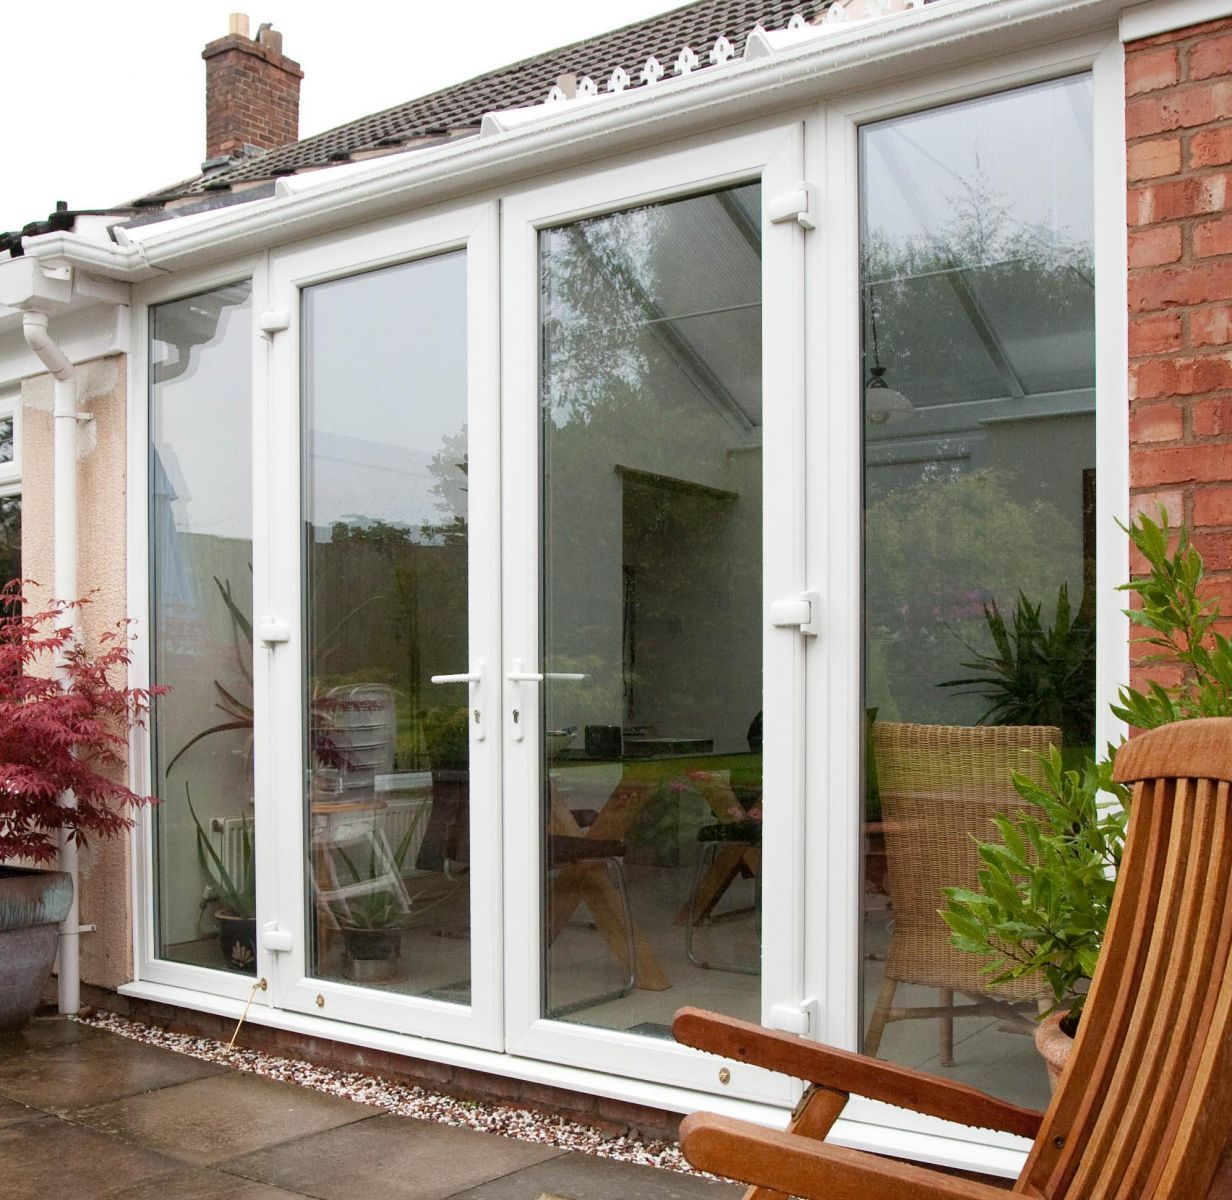 Upvc window ideas  be secure u save on electricity bills with our energy efficient